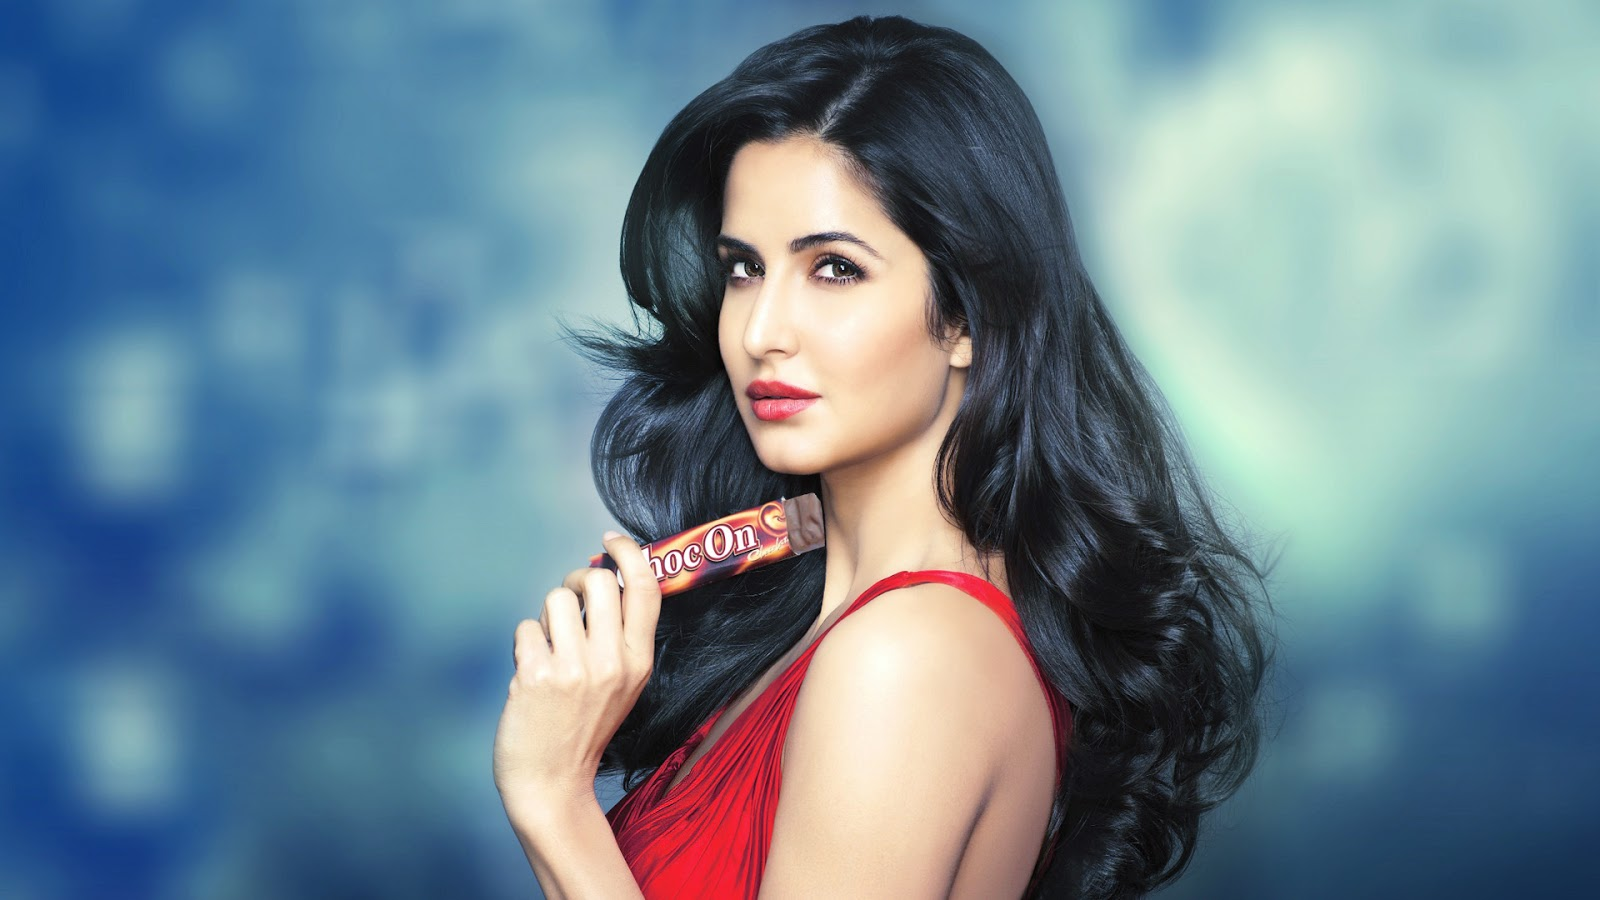 katrina kaif choc on HD